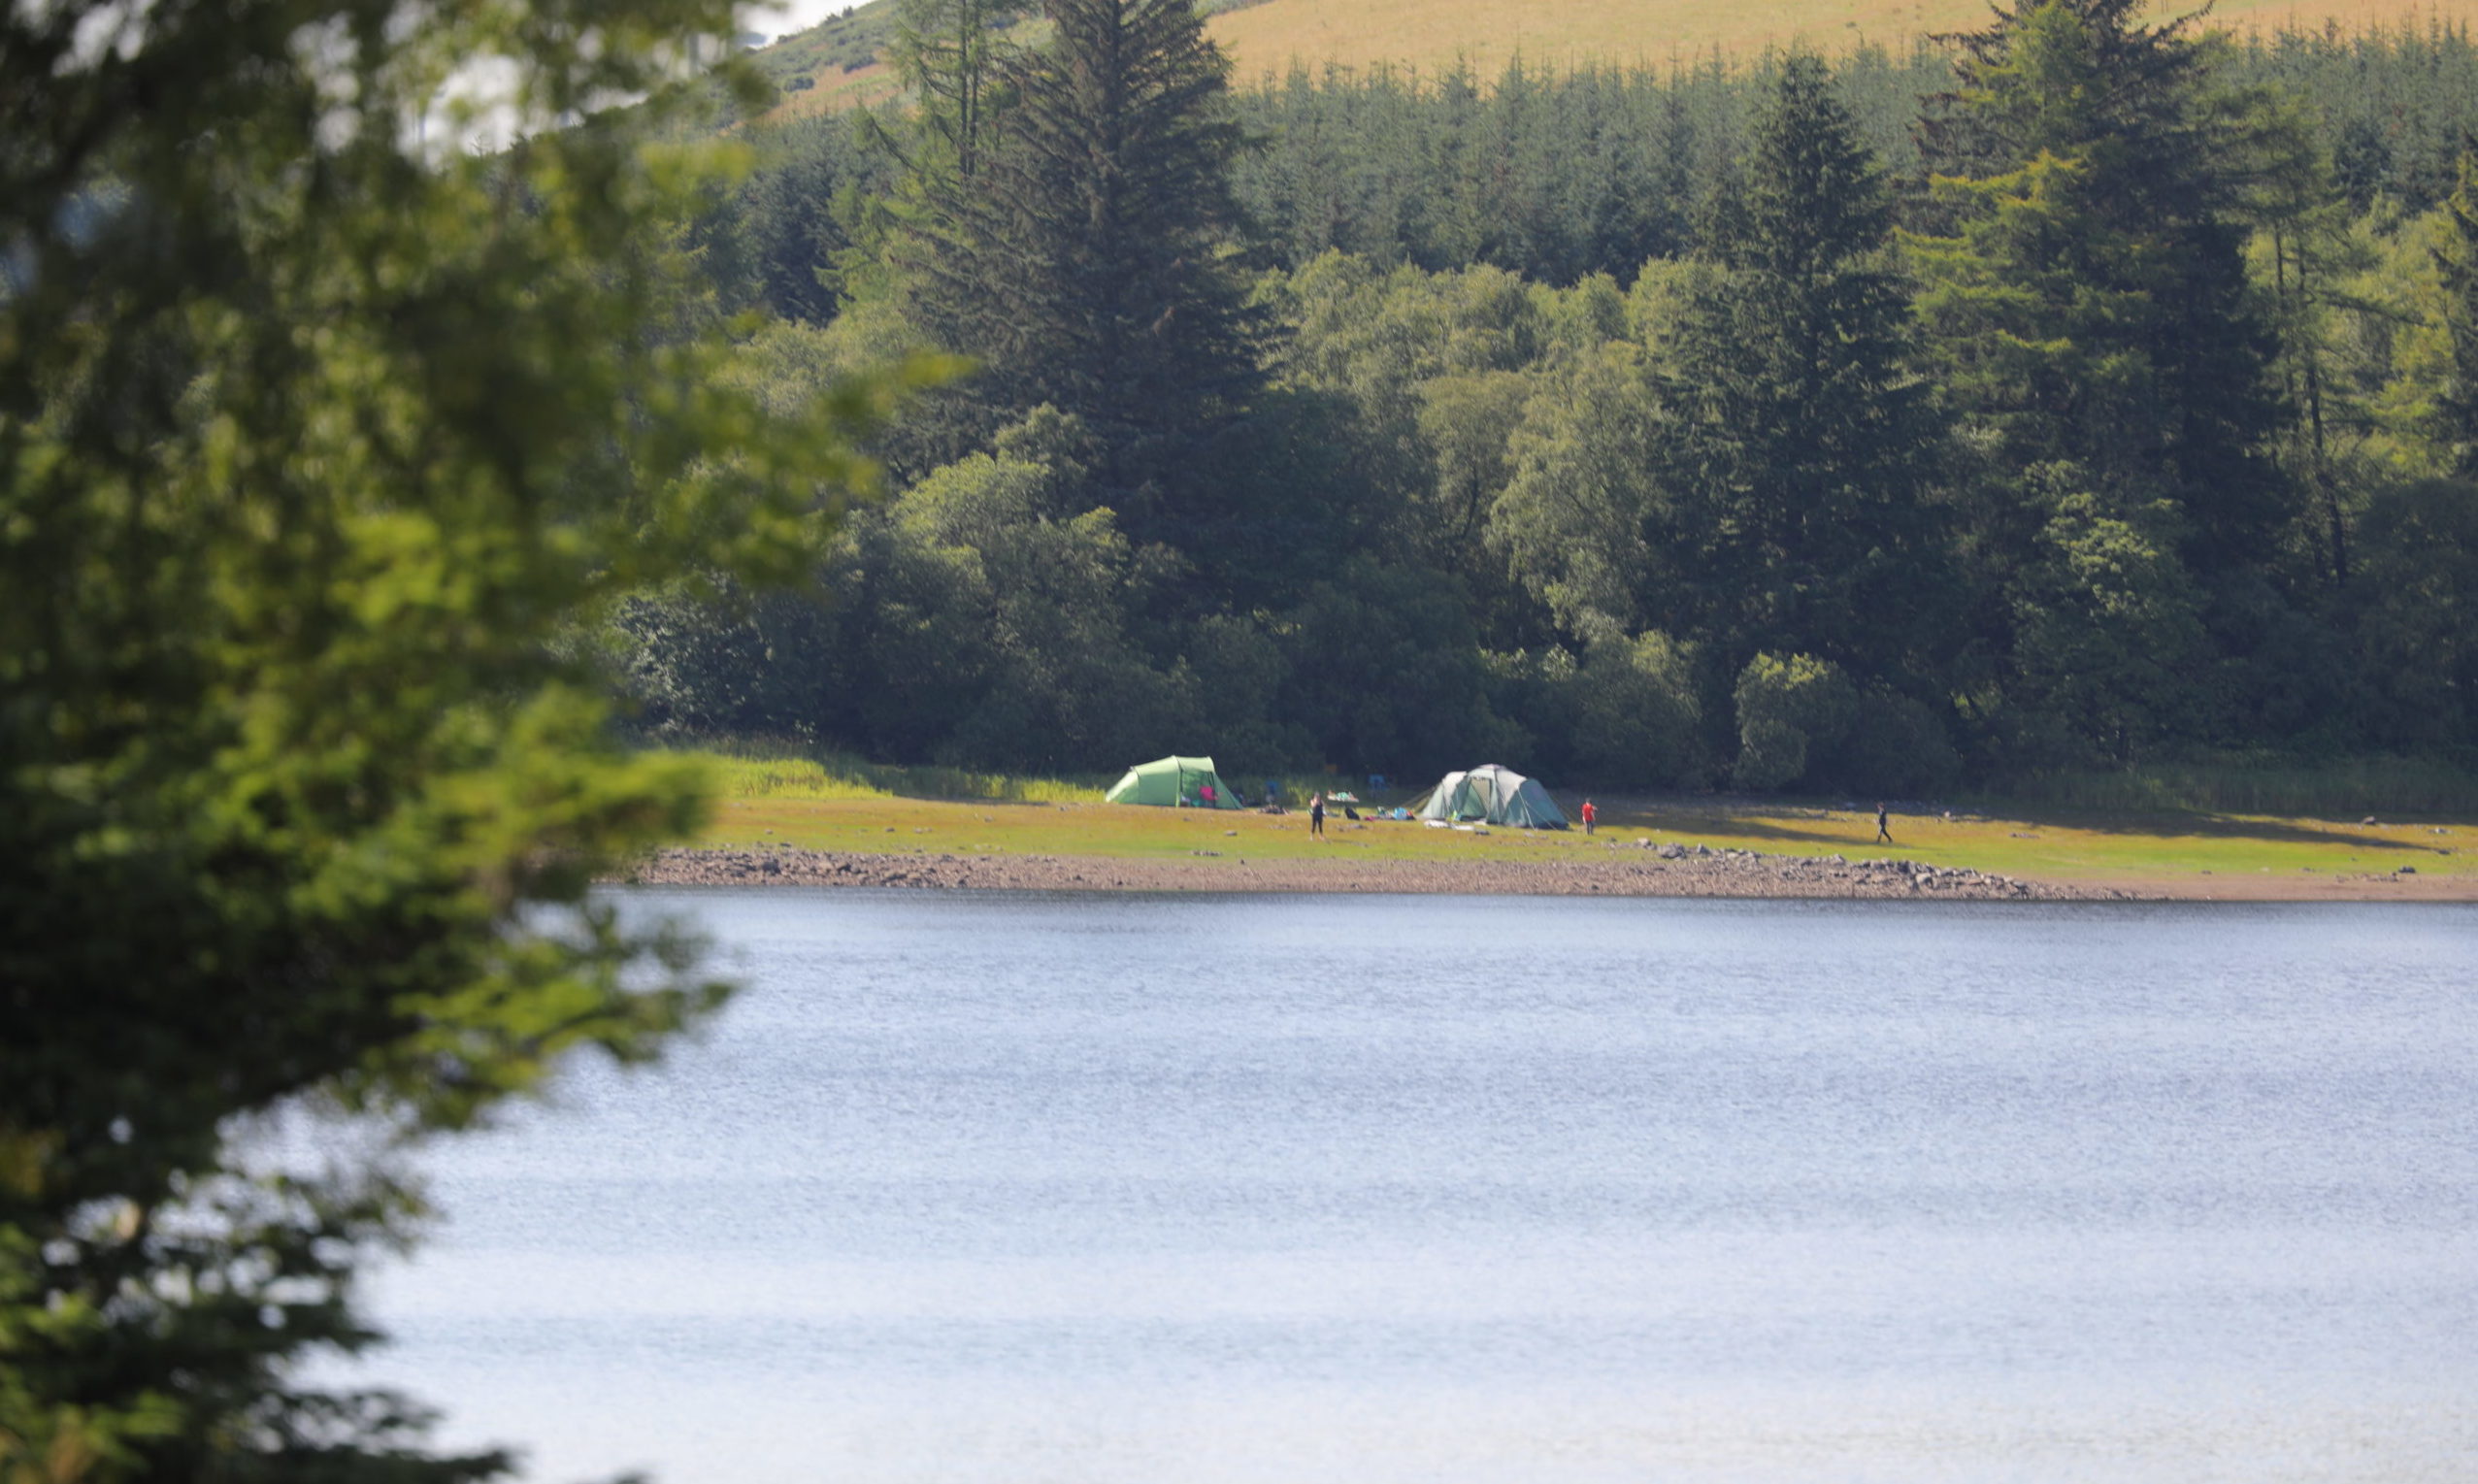 Wild campers at Lintrathen Loch.